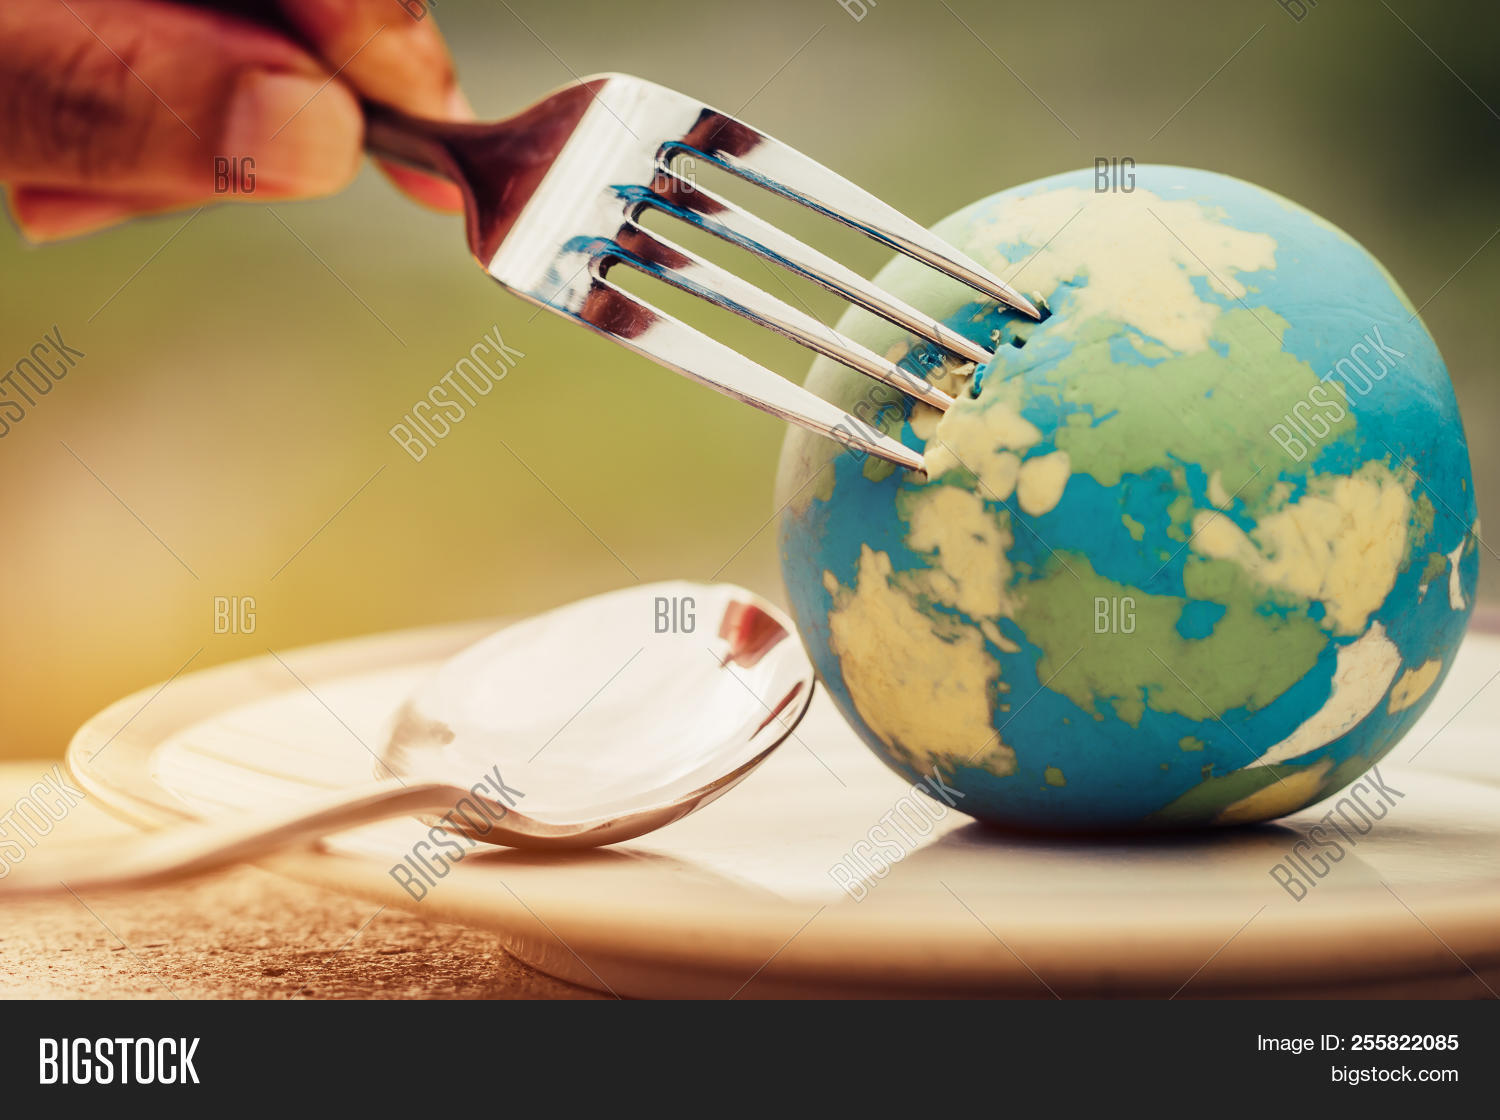 Buffet,america,background,best,blue,breakfast,business,care,catering,cooking,diet,dining,dinner,dish,earth,eat,eating,eco,ecological,ecology,empty,environment,feeding,food,fork,global,globe,green,health,healthy,hunger,hungry,international,kitchen,knife,lunch,map,meal,menu,national,nature,ocean,planet,plate,reservation,save,service,sphere,traditional,world